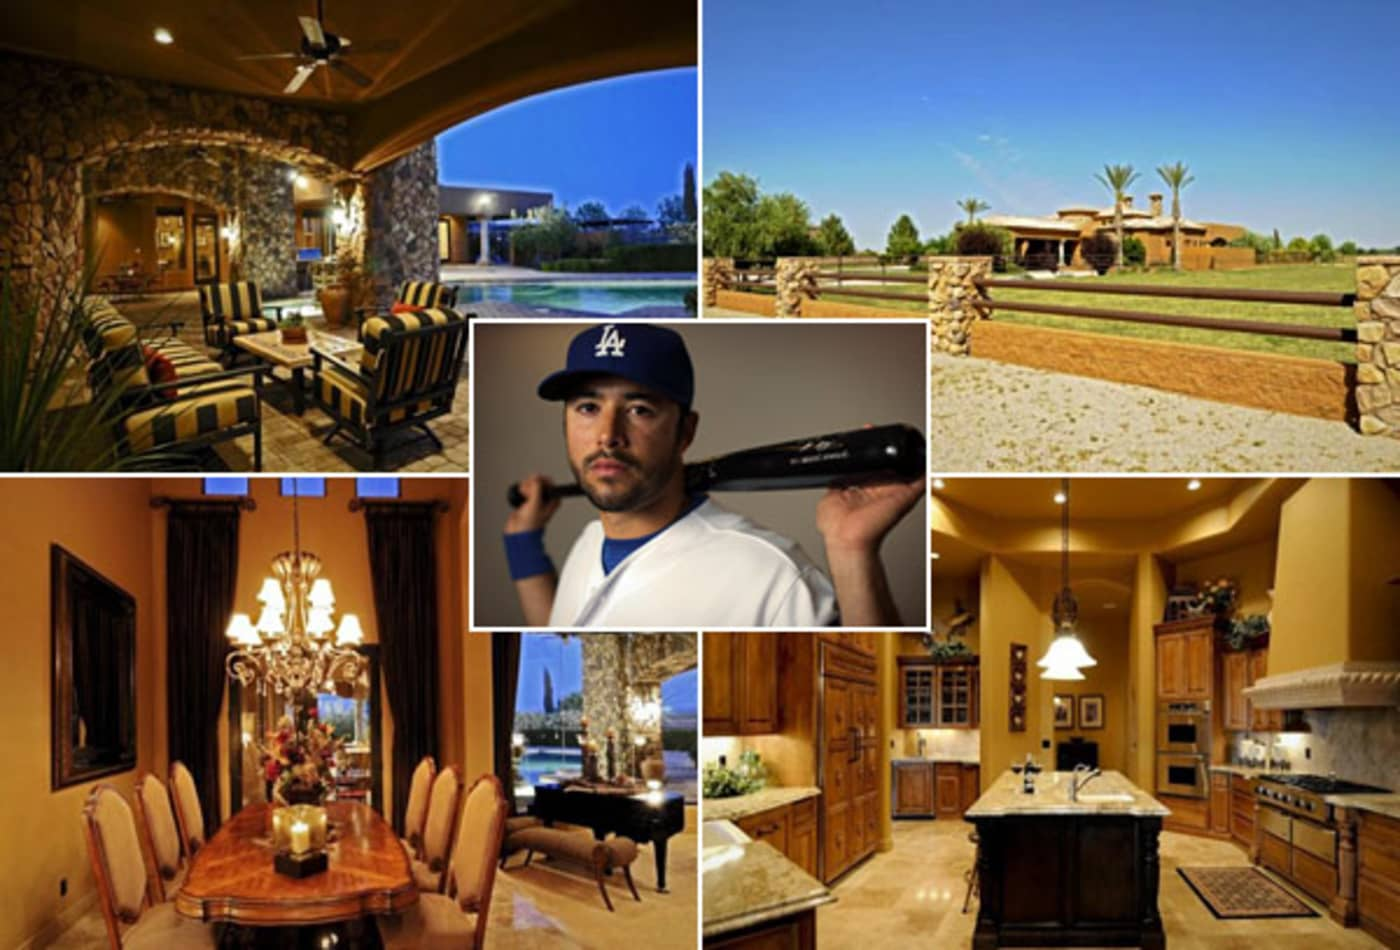 Andre-Ethier-Spring-Training-Homes.jpg